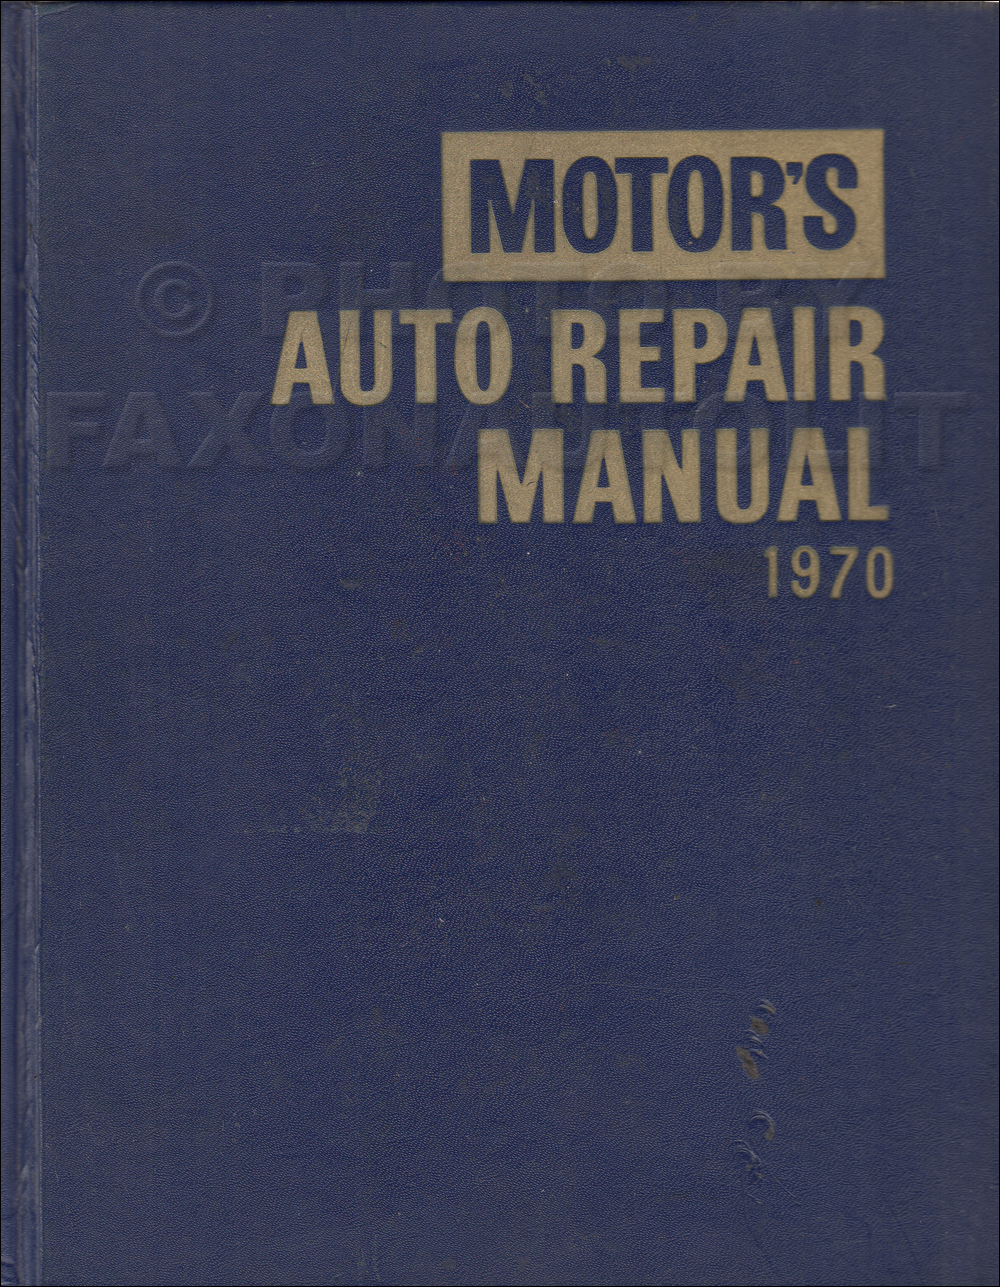 1964-1970 Motors 33rd Edition Shop Manual